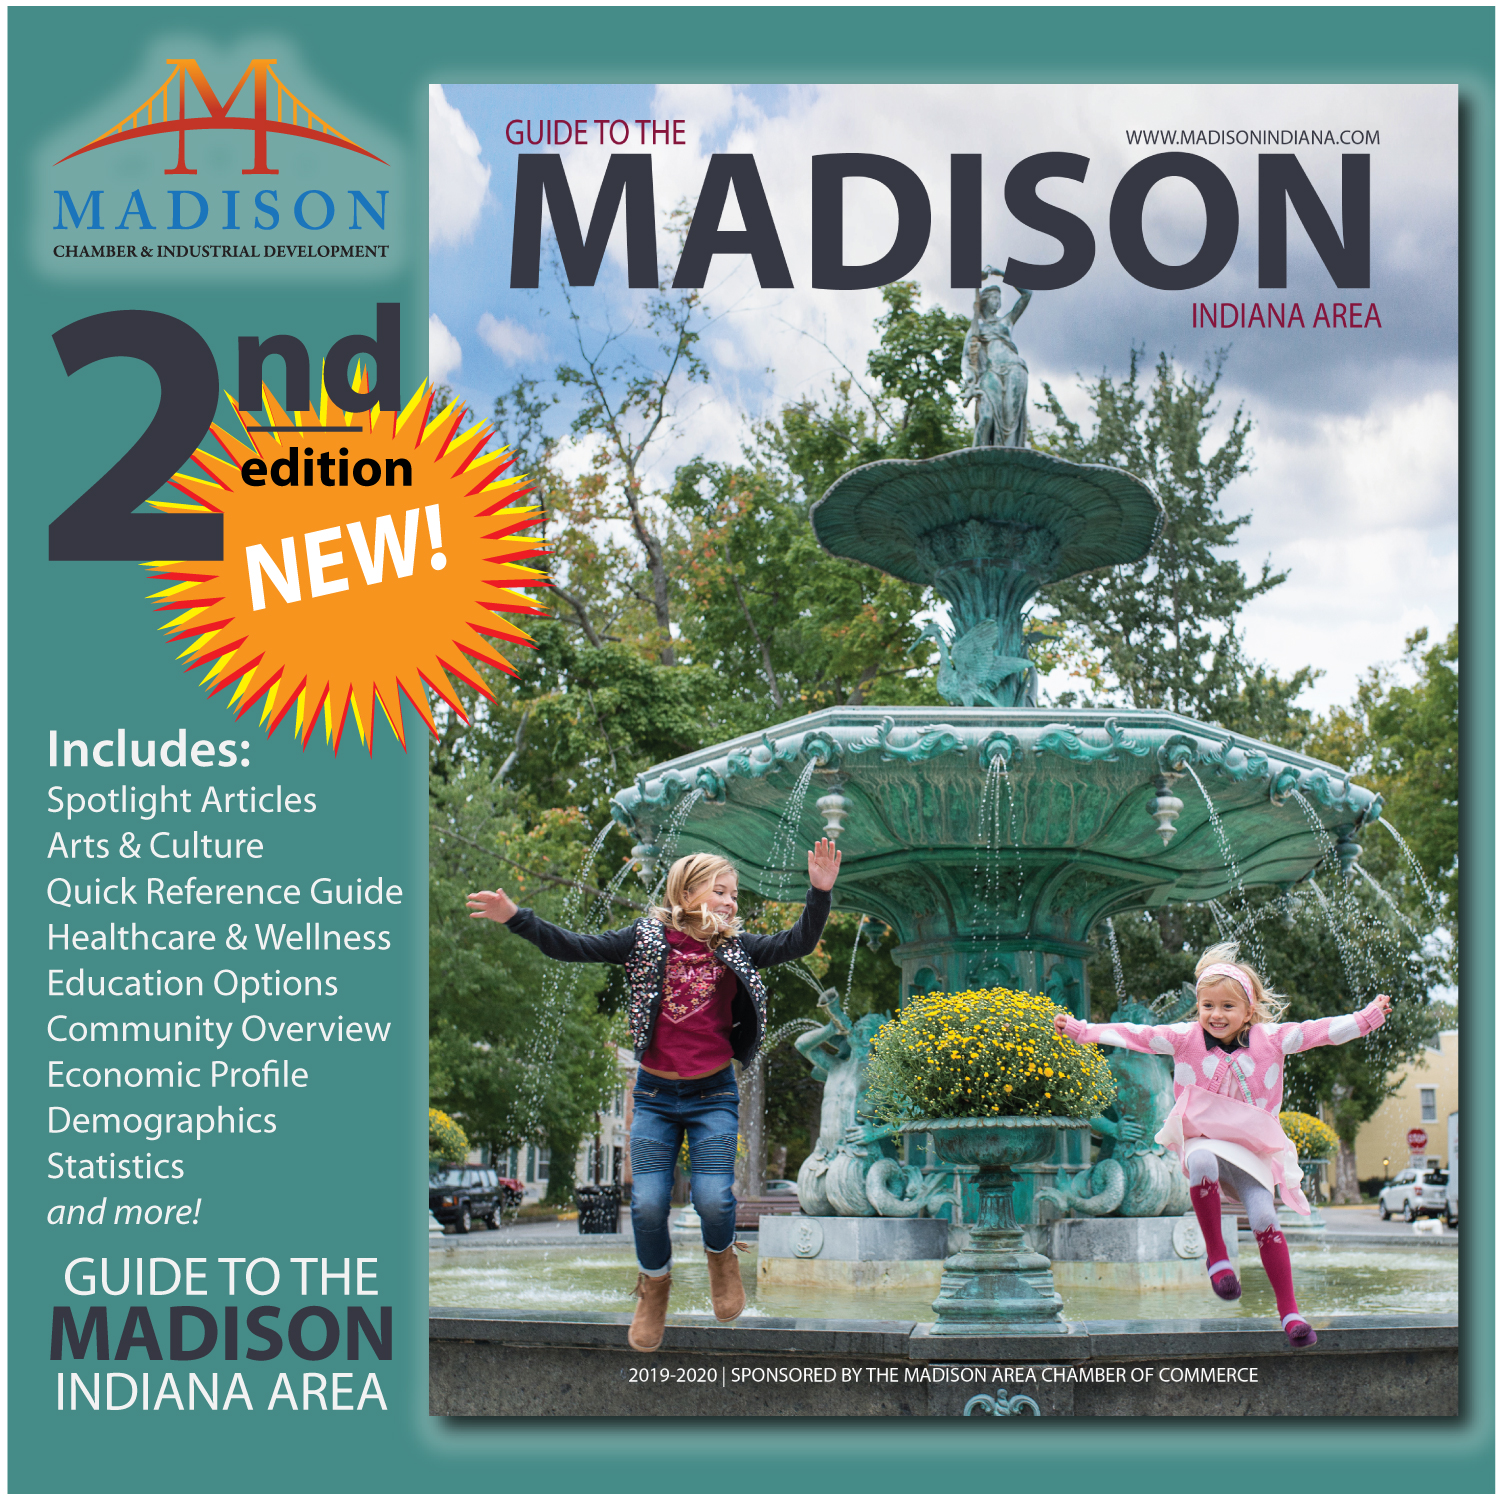 Indiana Festival Guide 2020.2019 Guide To The Madison Indiana Area Madison Chamber